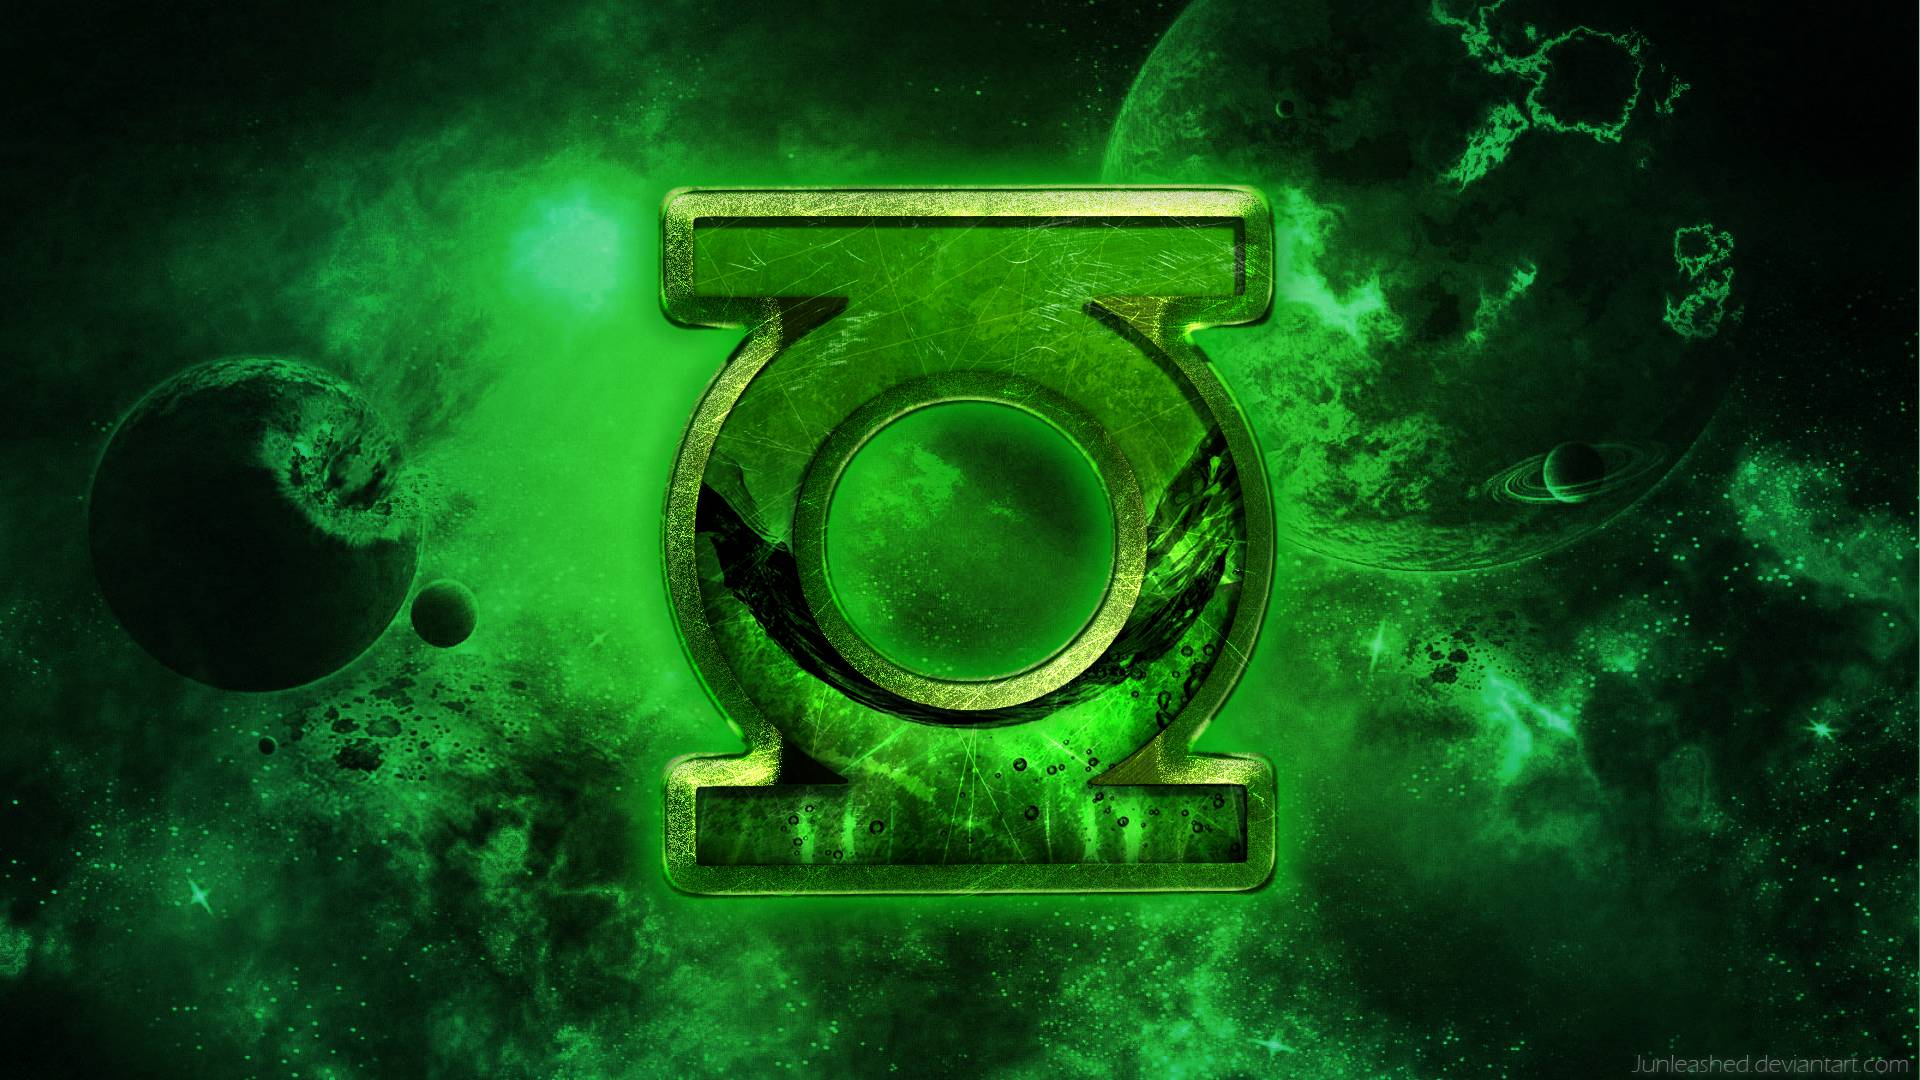 green lantern logo wallpapers - wallpaper cave